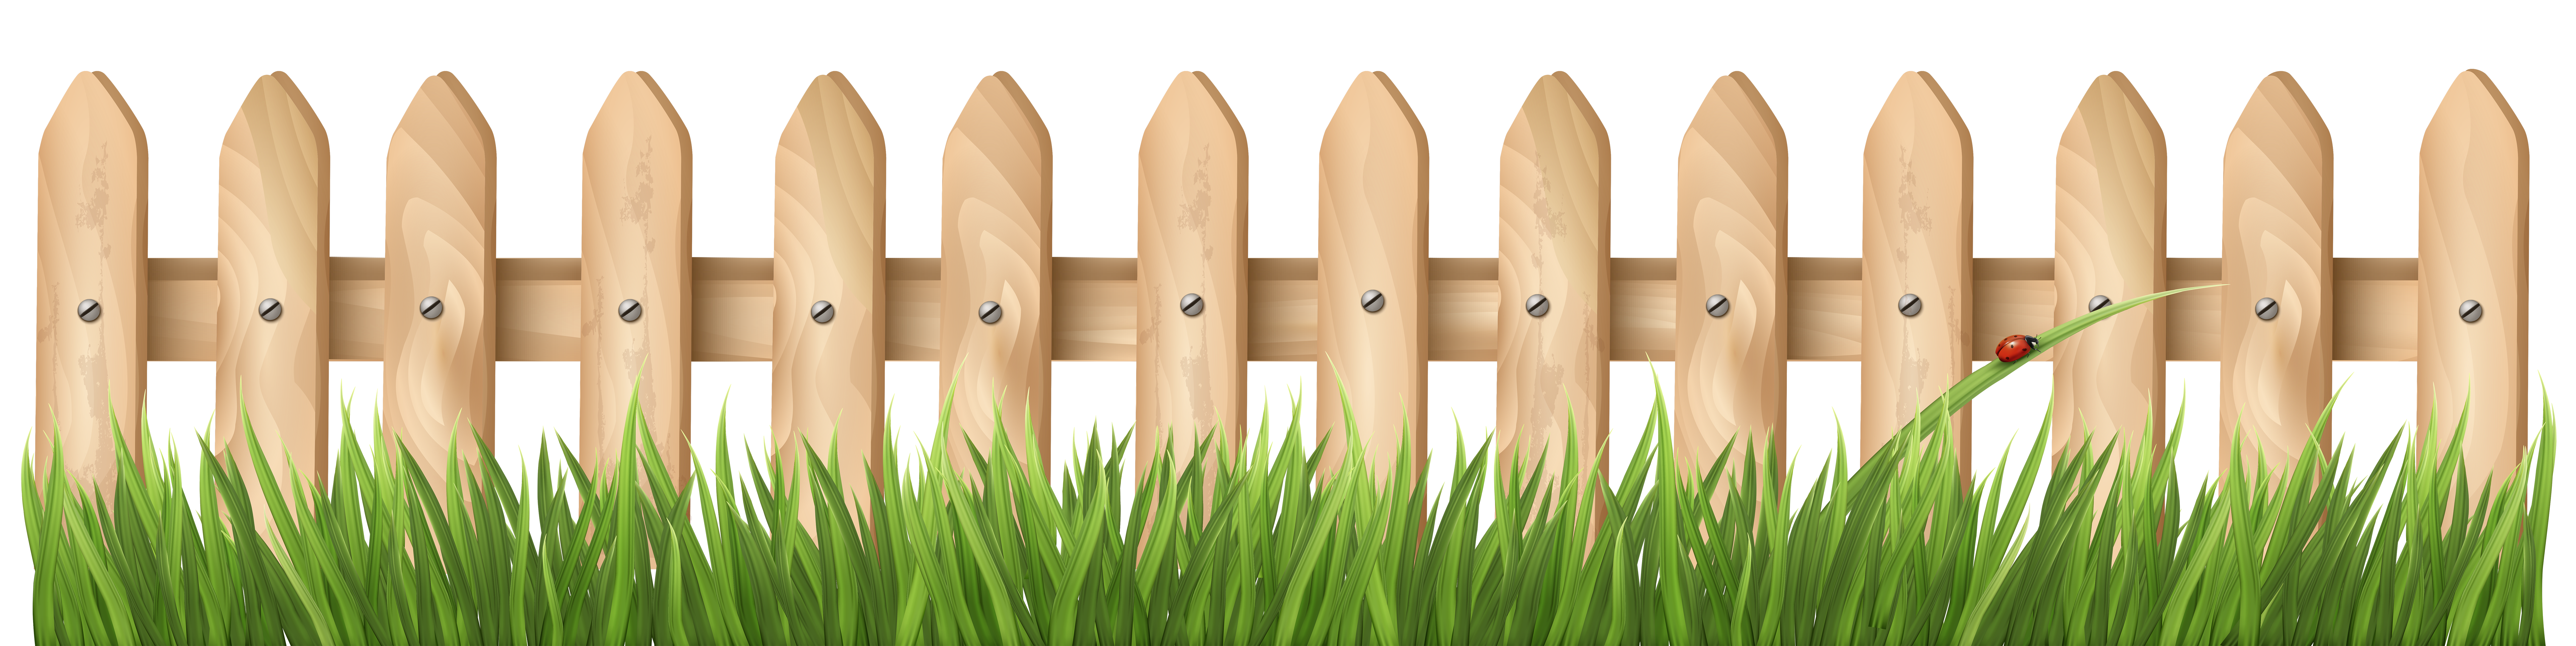 image black and white download Cut grass clipart. Transparent fence with png